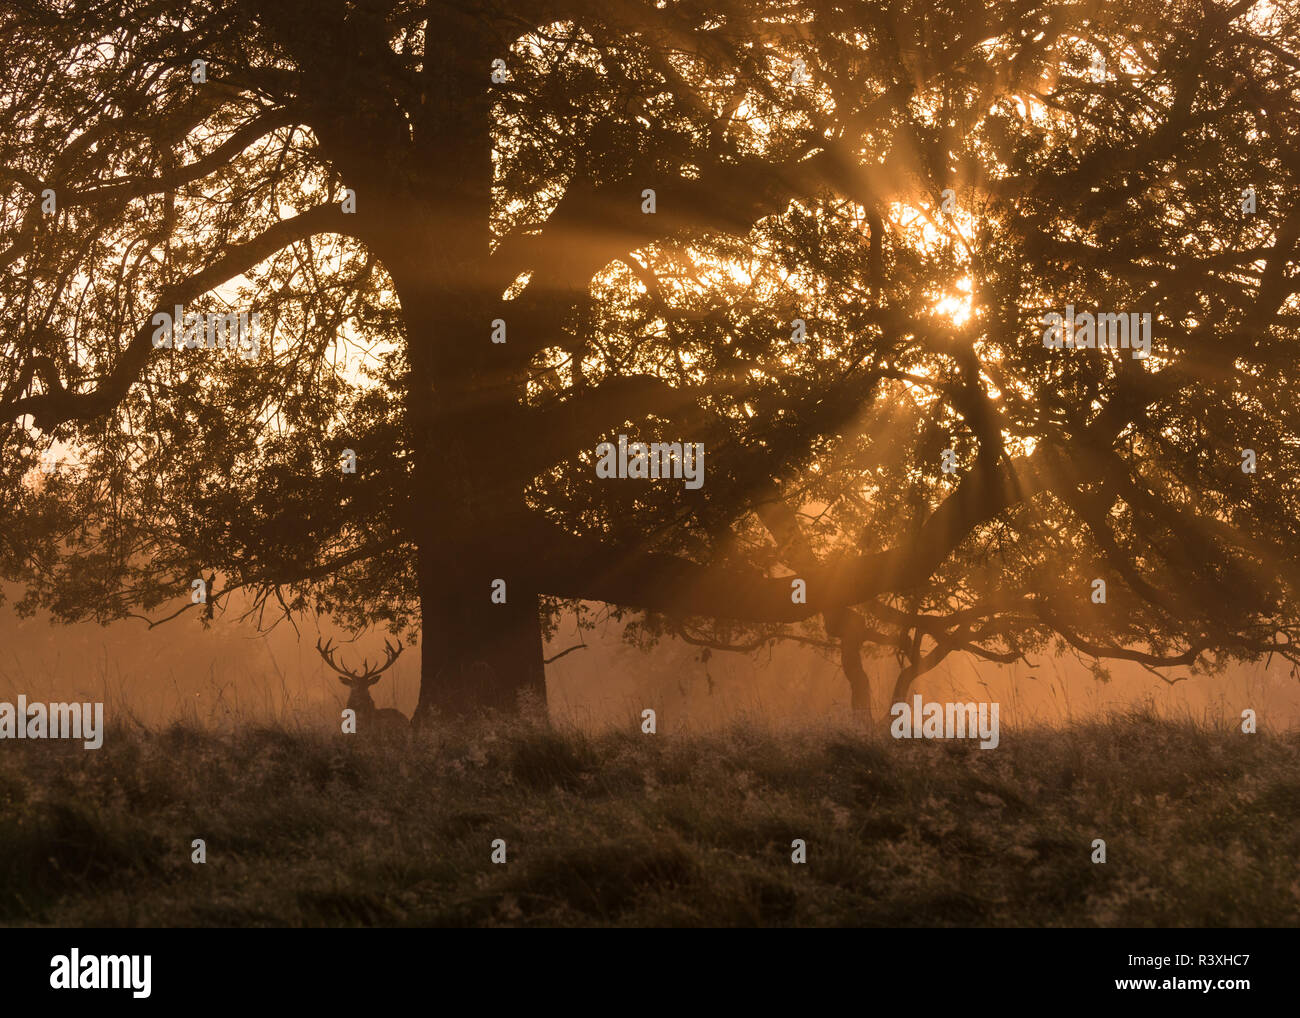 The Watcher In the Mist - Stock Image